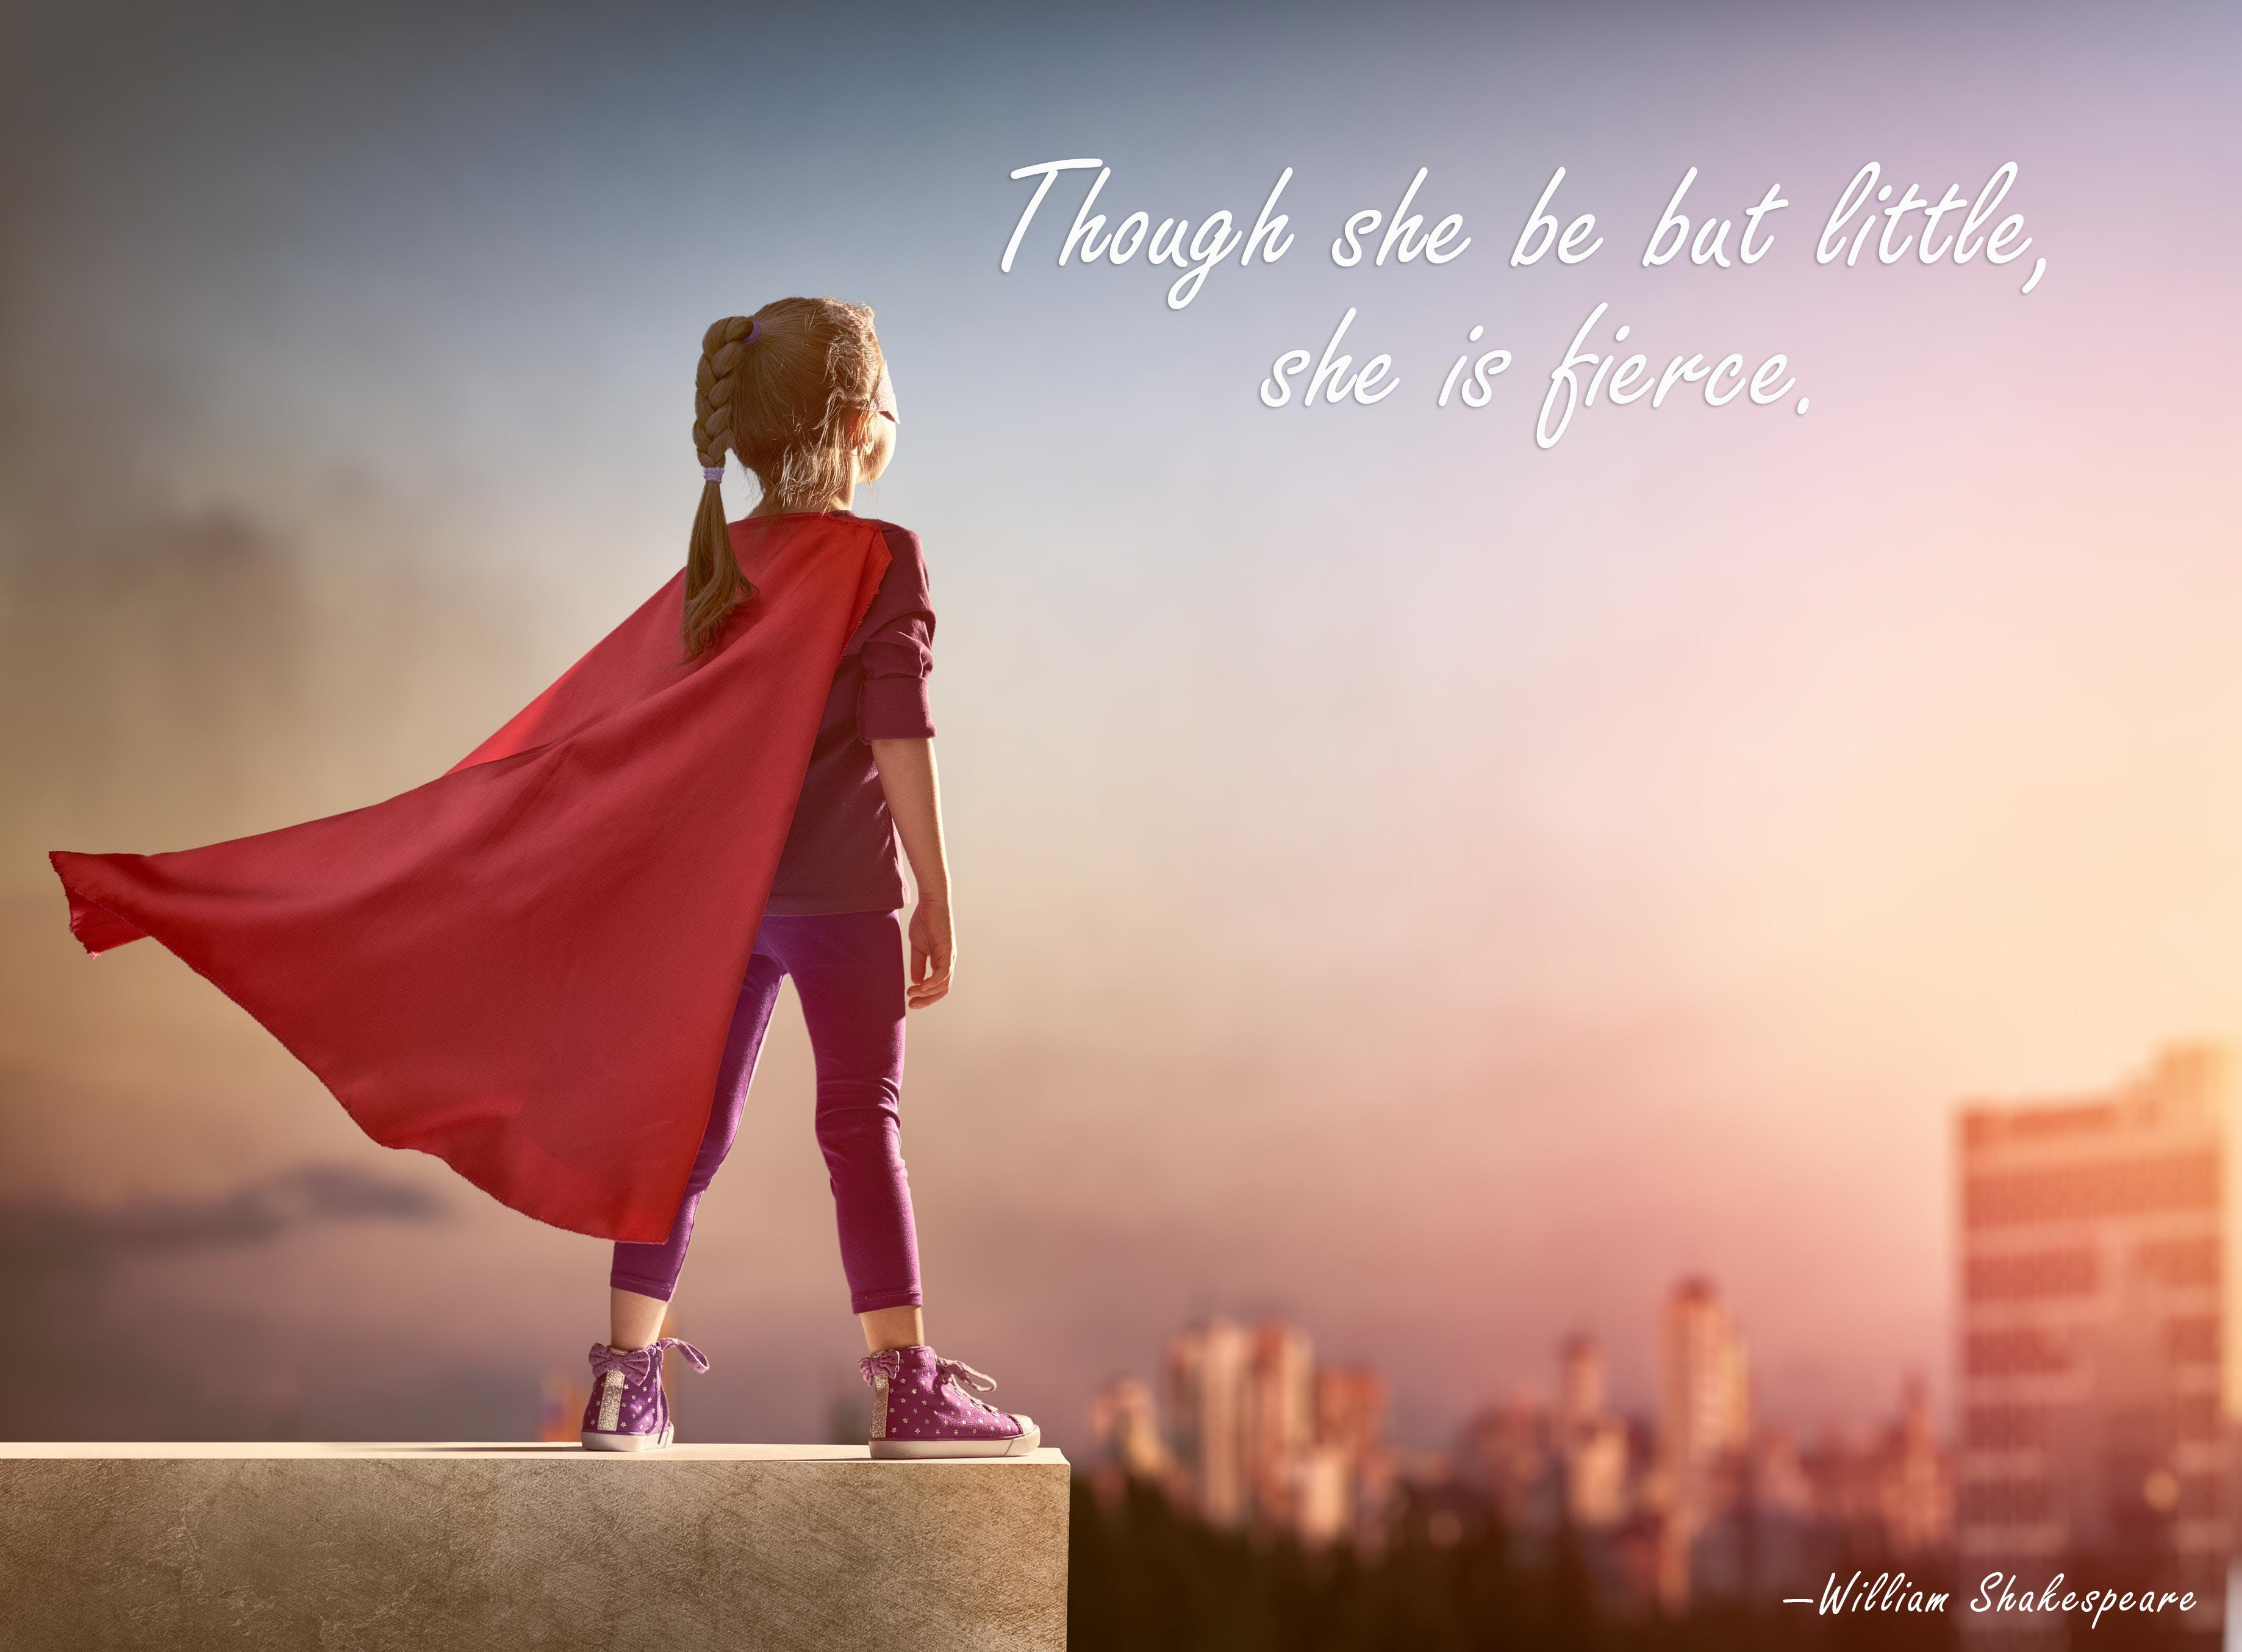 """Though she be but little, she is fierce.""—William Shakespeare [3676×2709] [OC]"